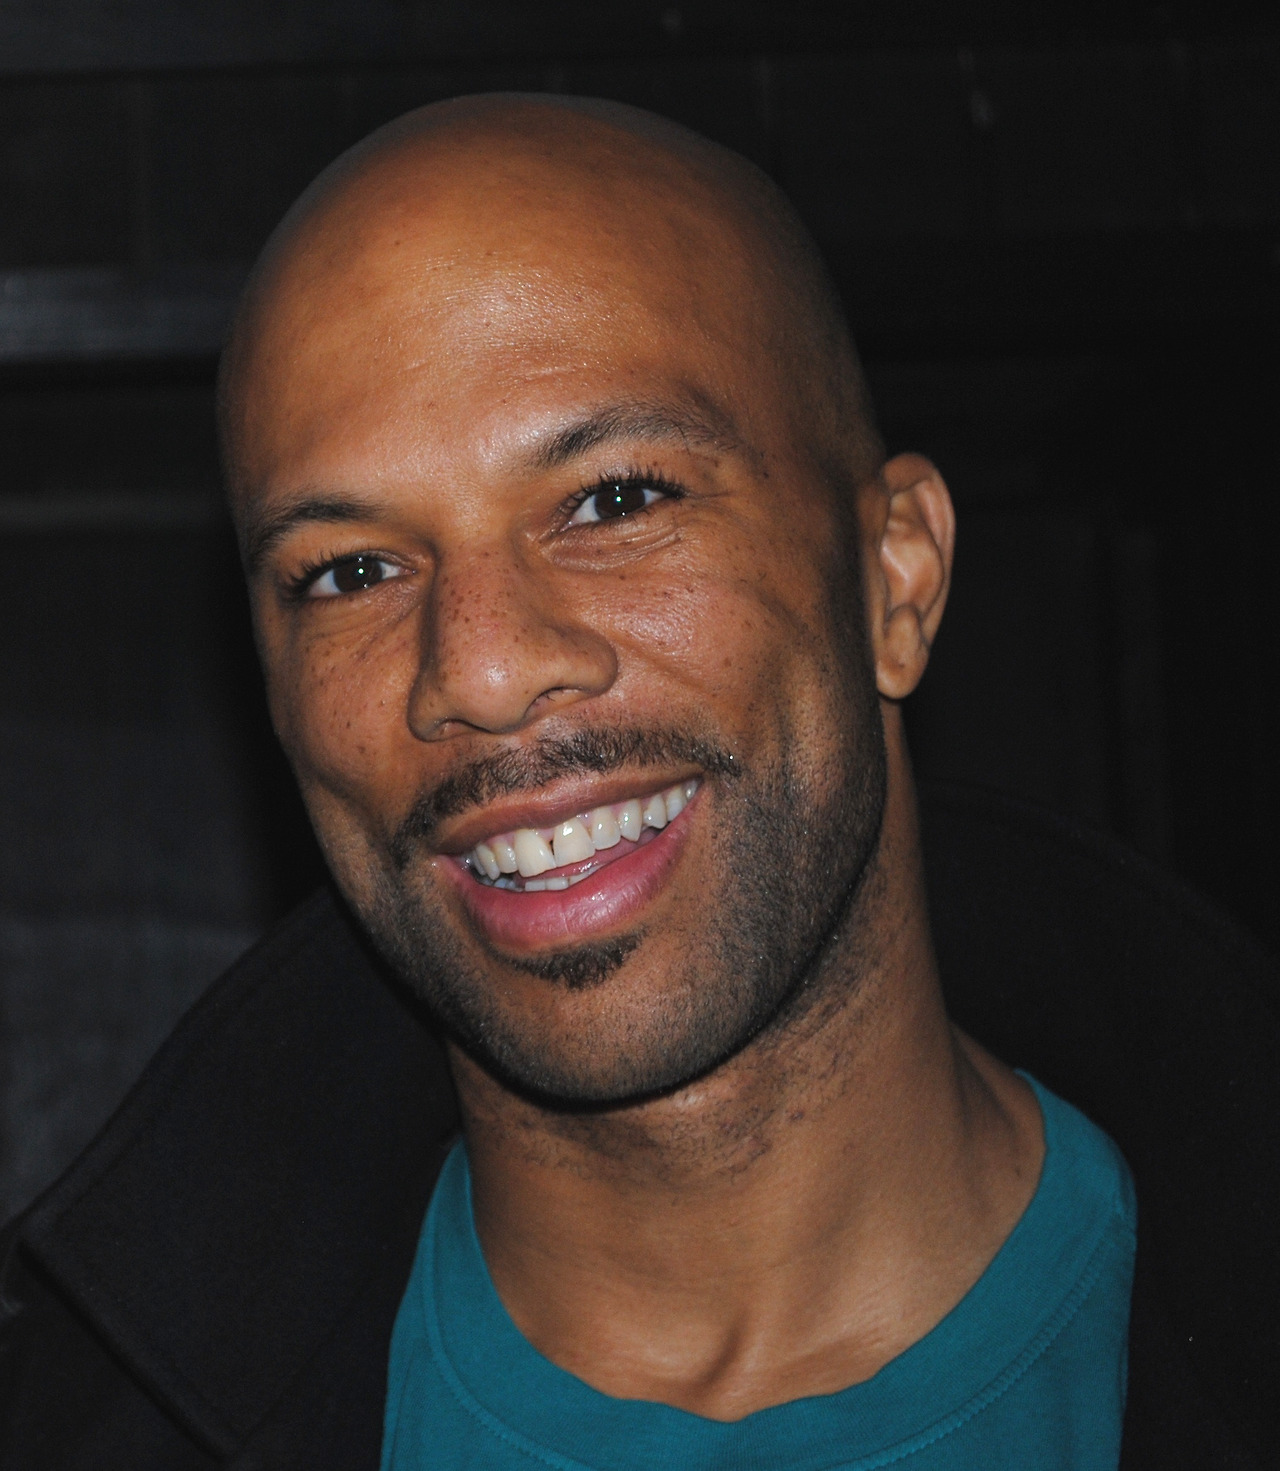 """xurbanmusicmagazine :     Photo by Anthony Alden     Can Rappers help reduce violence?     Grammy-award winning hip-hop artist Common, who has openly worried about the violence in Chicago, was in his hometown Friday to help celebrate the city's music scene when he was confronted with a brutal reminder of what he's been talking a story about a hail of gunfire that wounded 13 people.  """"It makes me think I got to do more; we got to do more,"""" he said in an interview with The Associated Press after giving a speech as the keynote speaker at the Chicago Music Summit, a conference to help local musicians and music professionals with their careers.Police say Thursday night's shooting appears to be gang related.      Read more at:  http://whoshotyouanthonyalden.blogspot.com/2013/09/can-rappers-can-help-reduce-violence.html"""